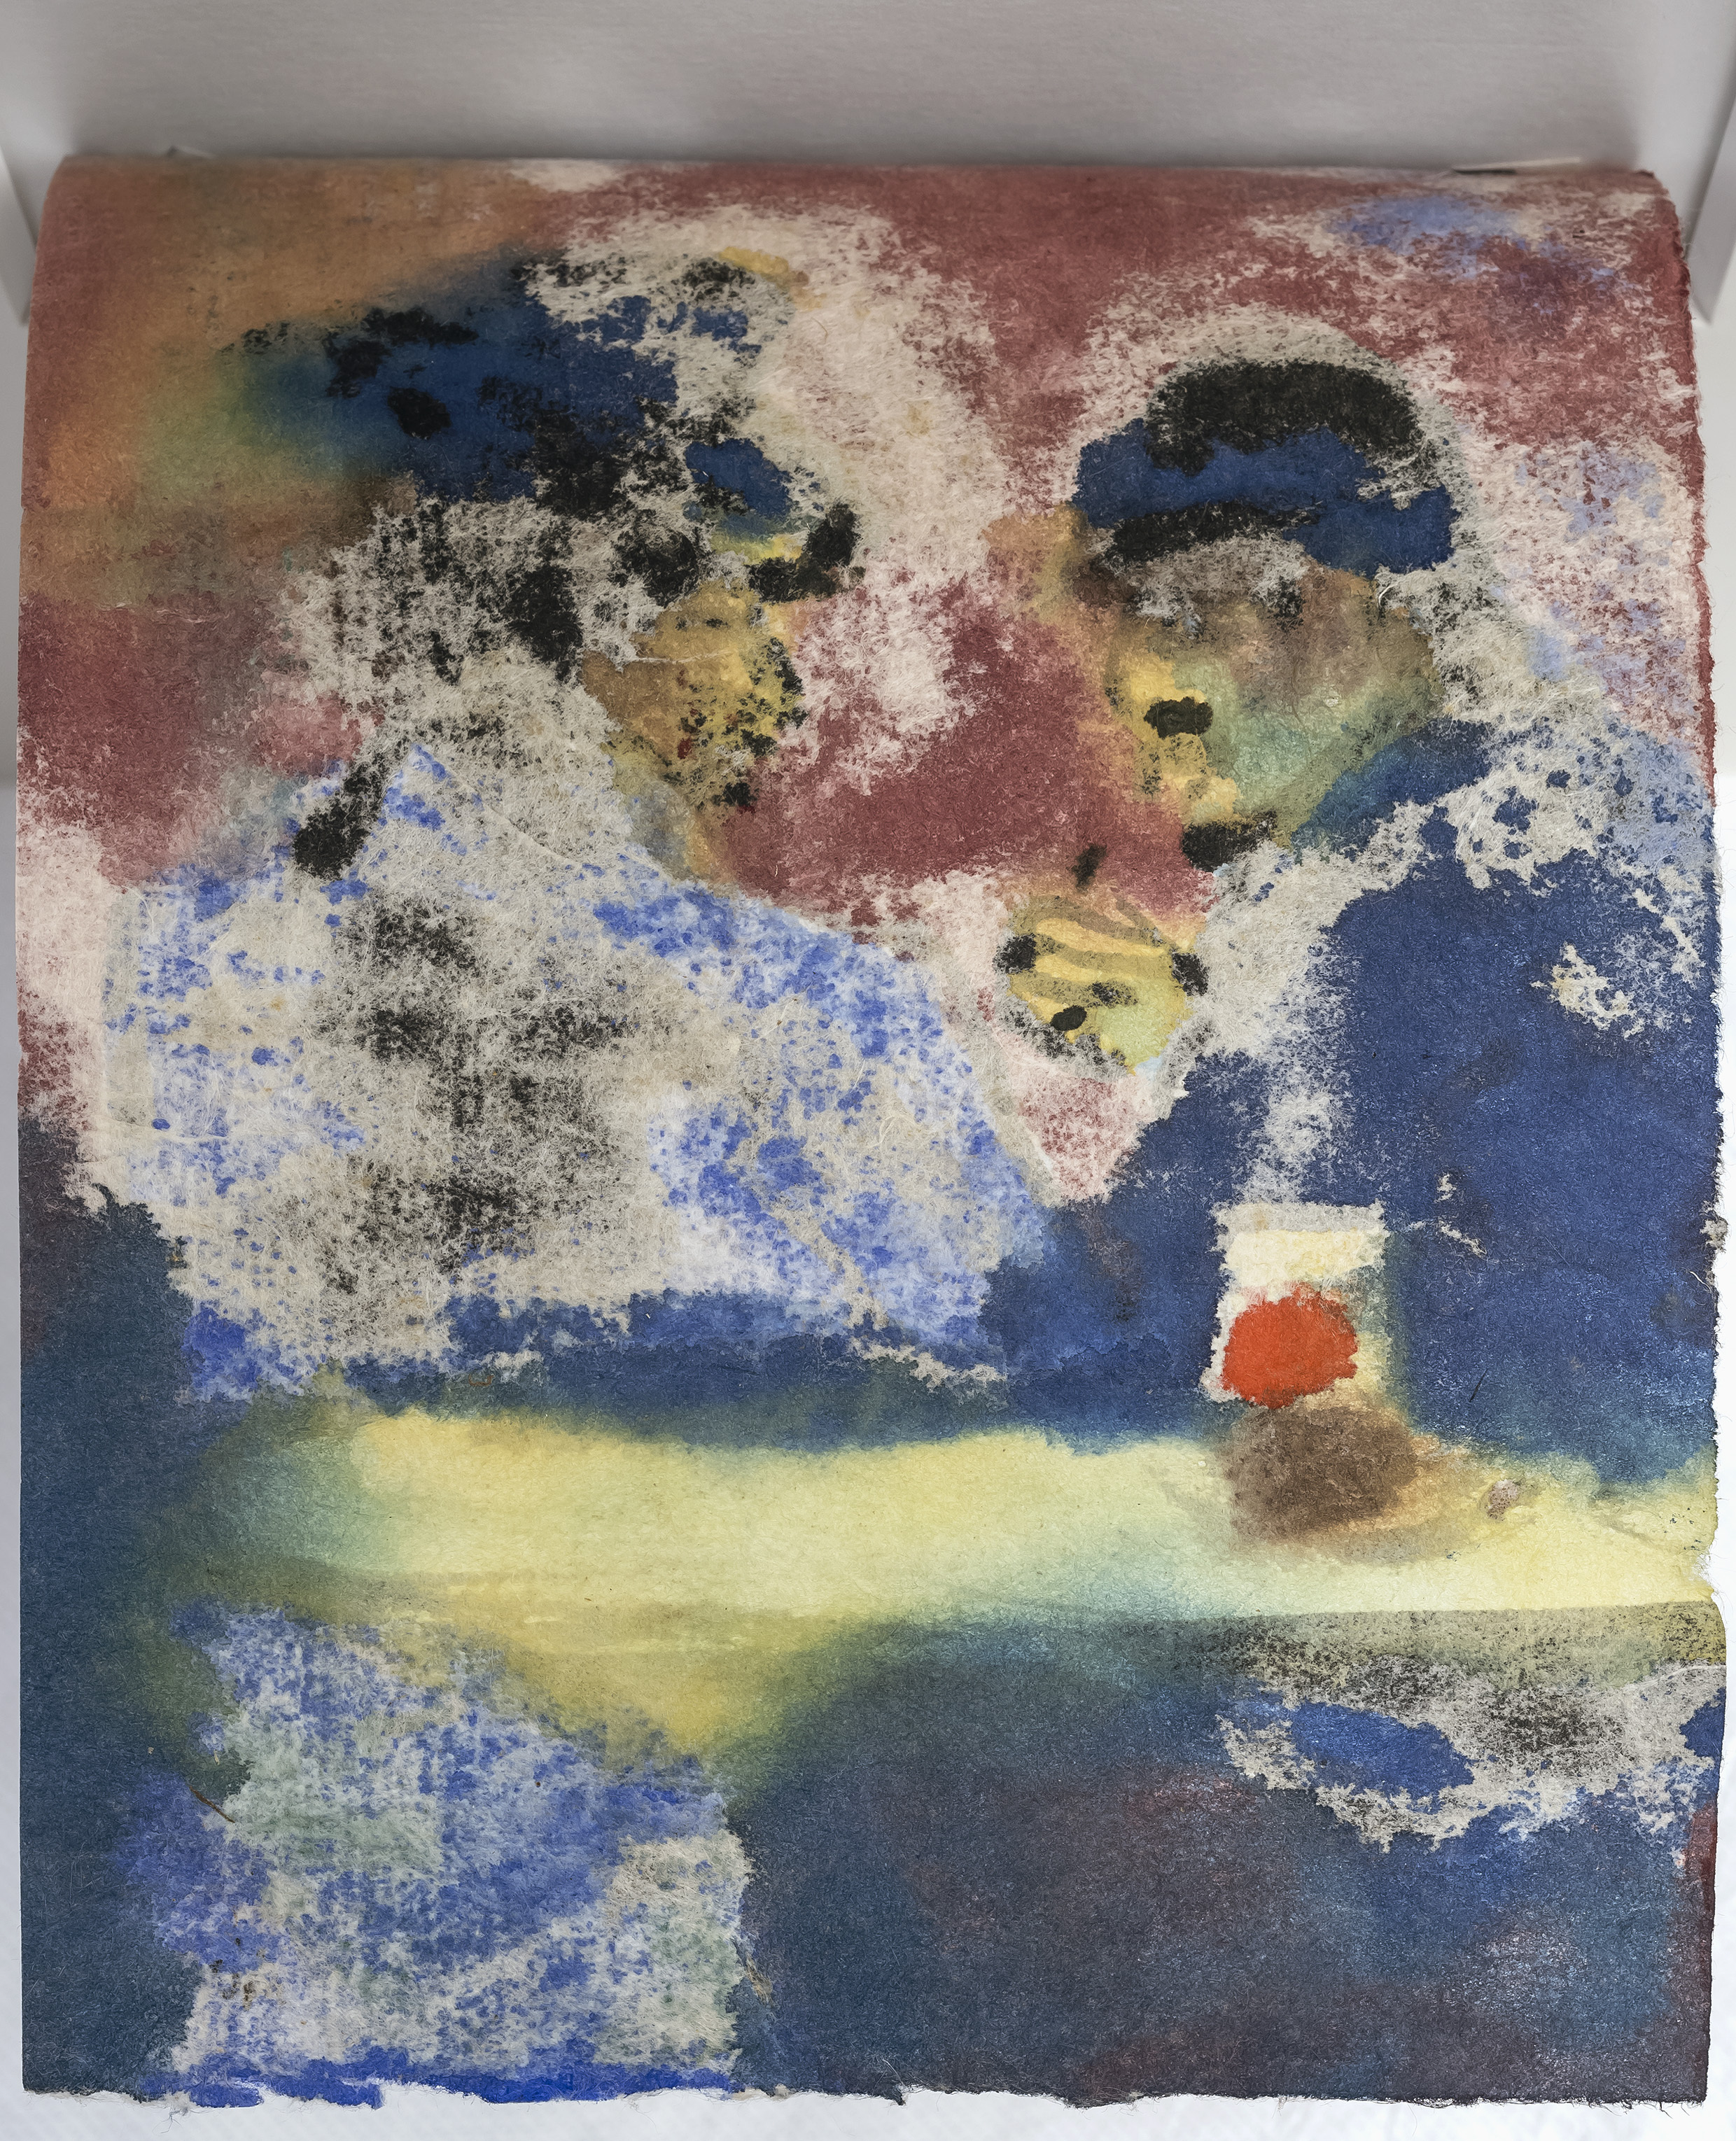 Emil Nolde - Pub Scene with Two Men at The Table 4/4